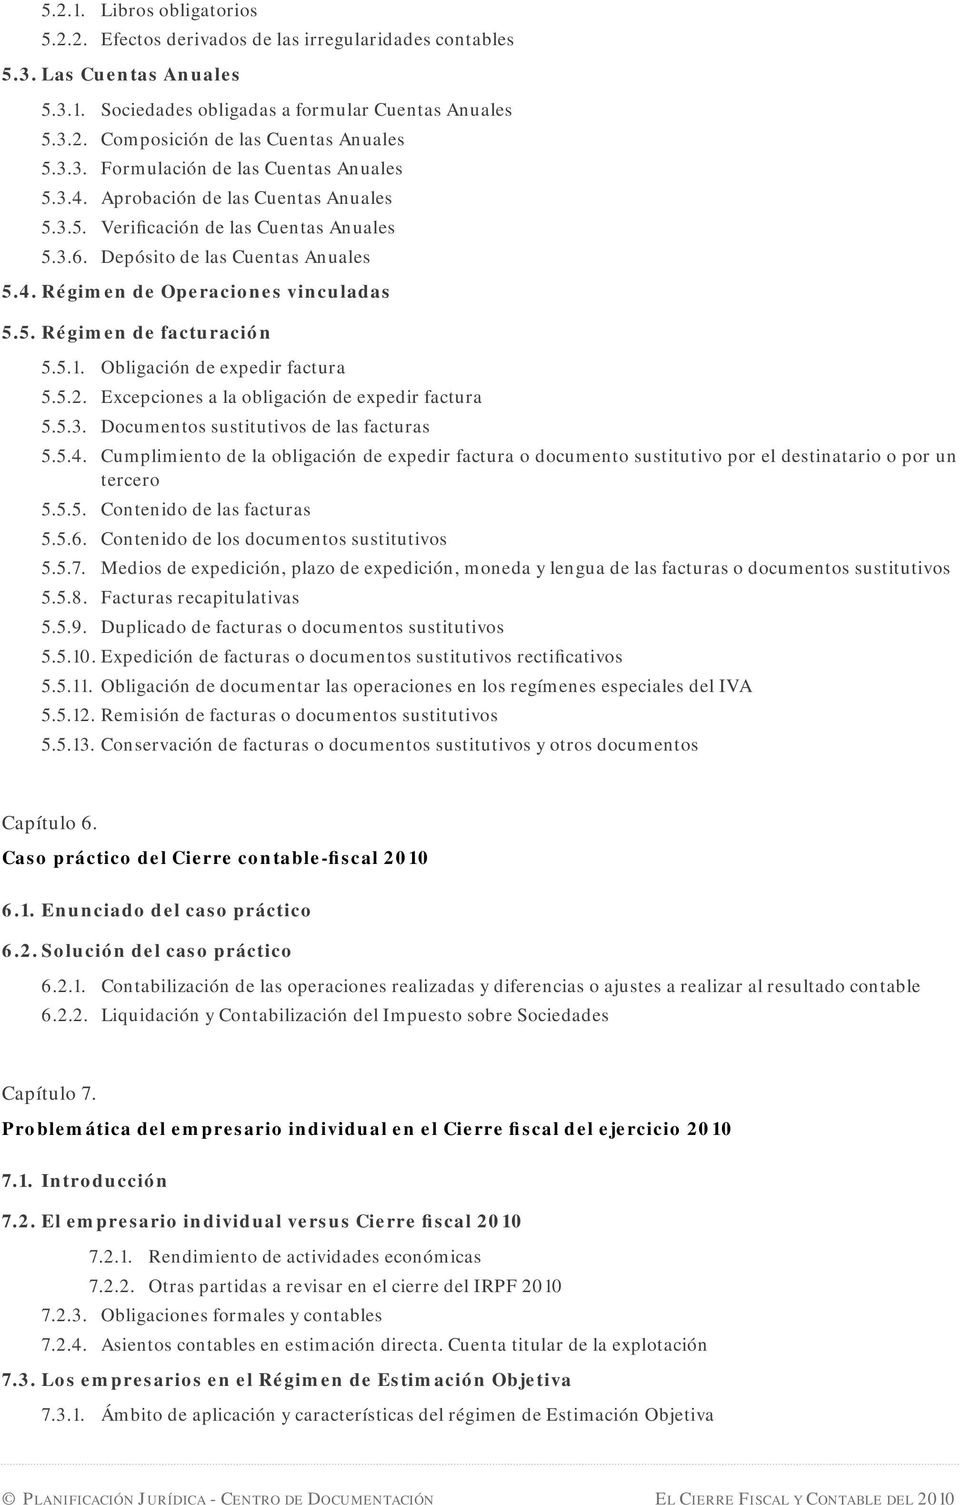 5. Régimen de facturación 5.5.1. Obligación de expedir factura 5.5.2. Excepciones a la obligación de expedir factura 5.5.3. Documentos sustitutivos de las facturas 5.5.4.